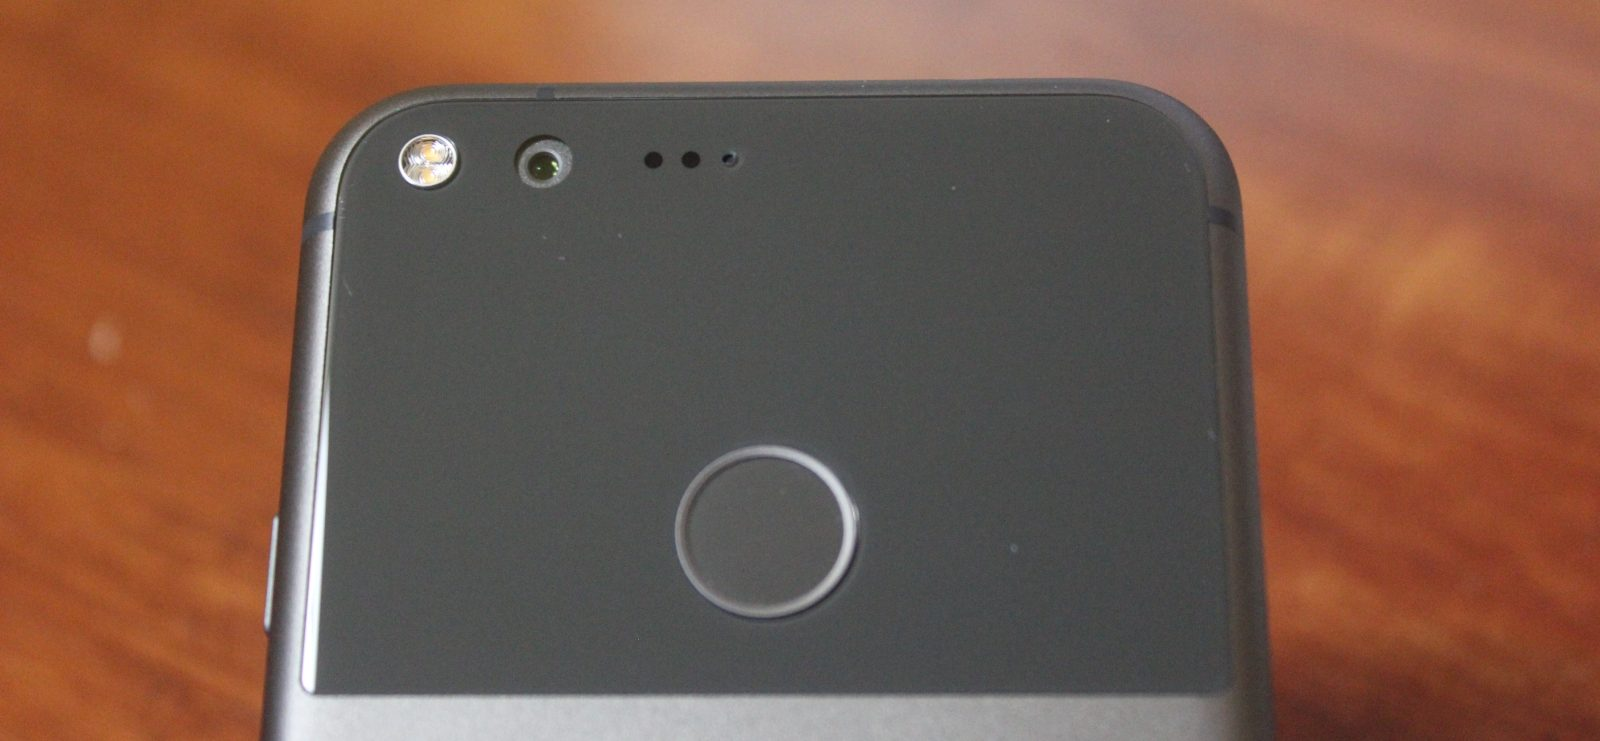 [Update: Final patch] Google stops updating the original Pixel and Pixel XL